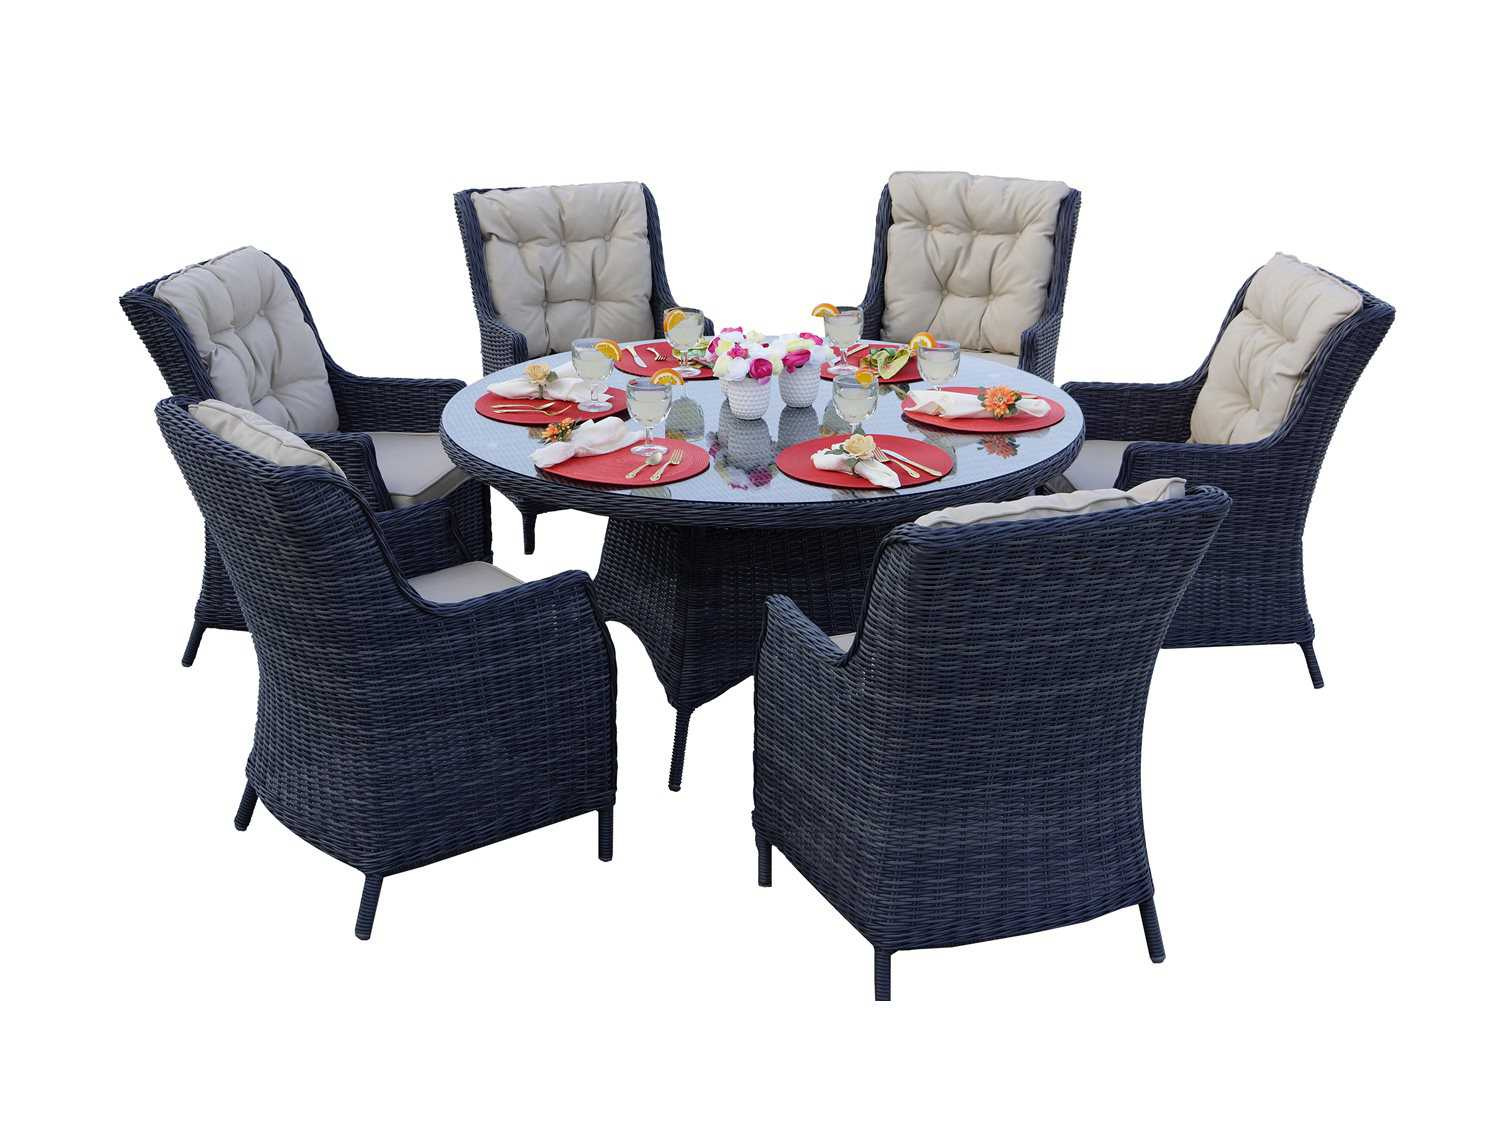 Darlee Outdoor Living Standard Valencia Wicker Dining Set ... on Outdoor Living Wicker id=86455